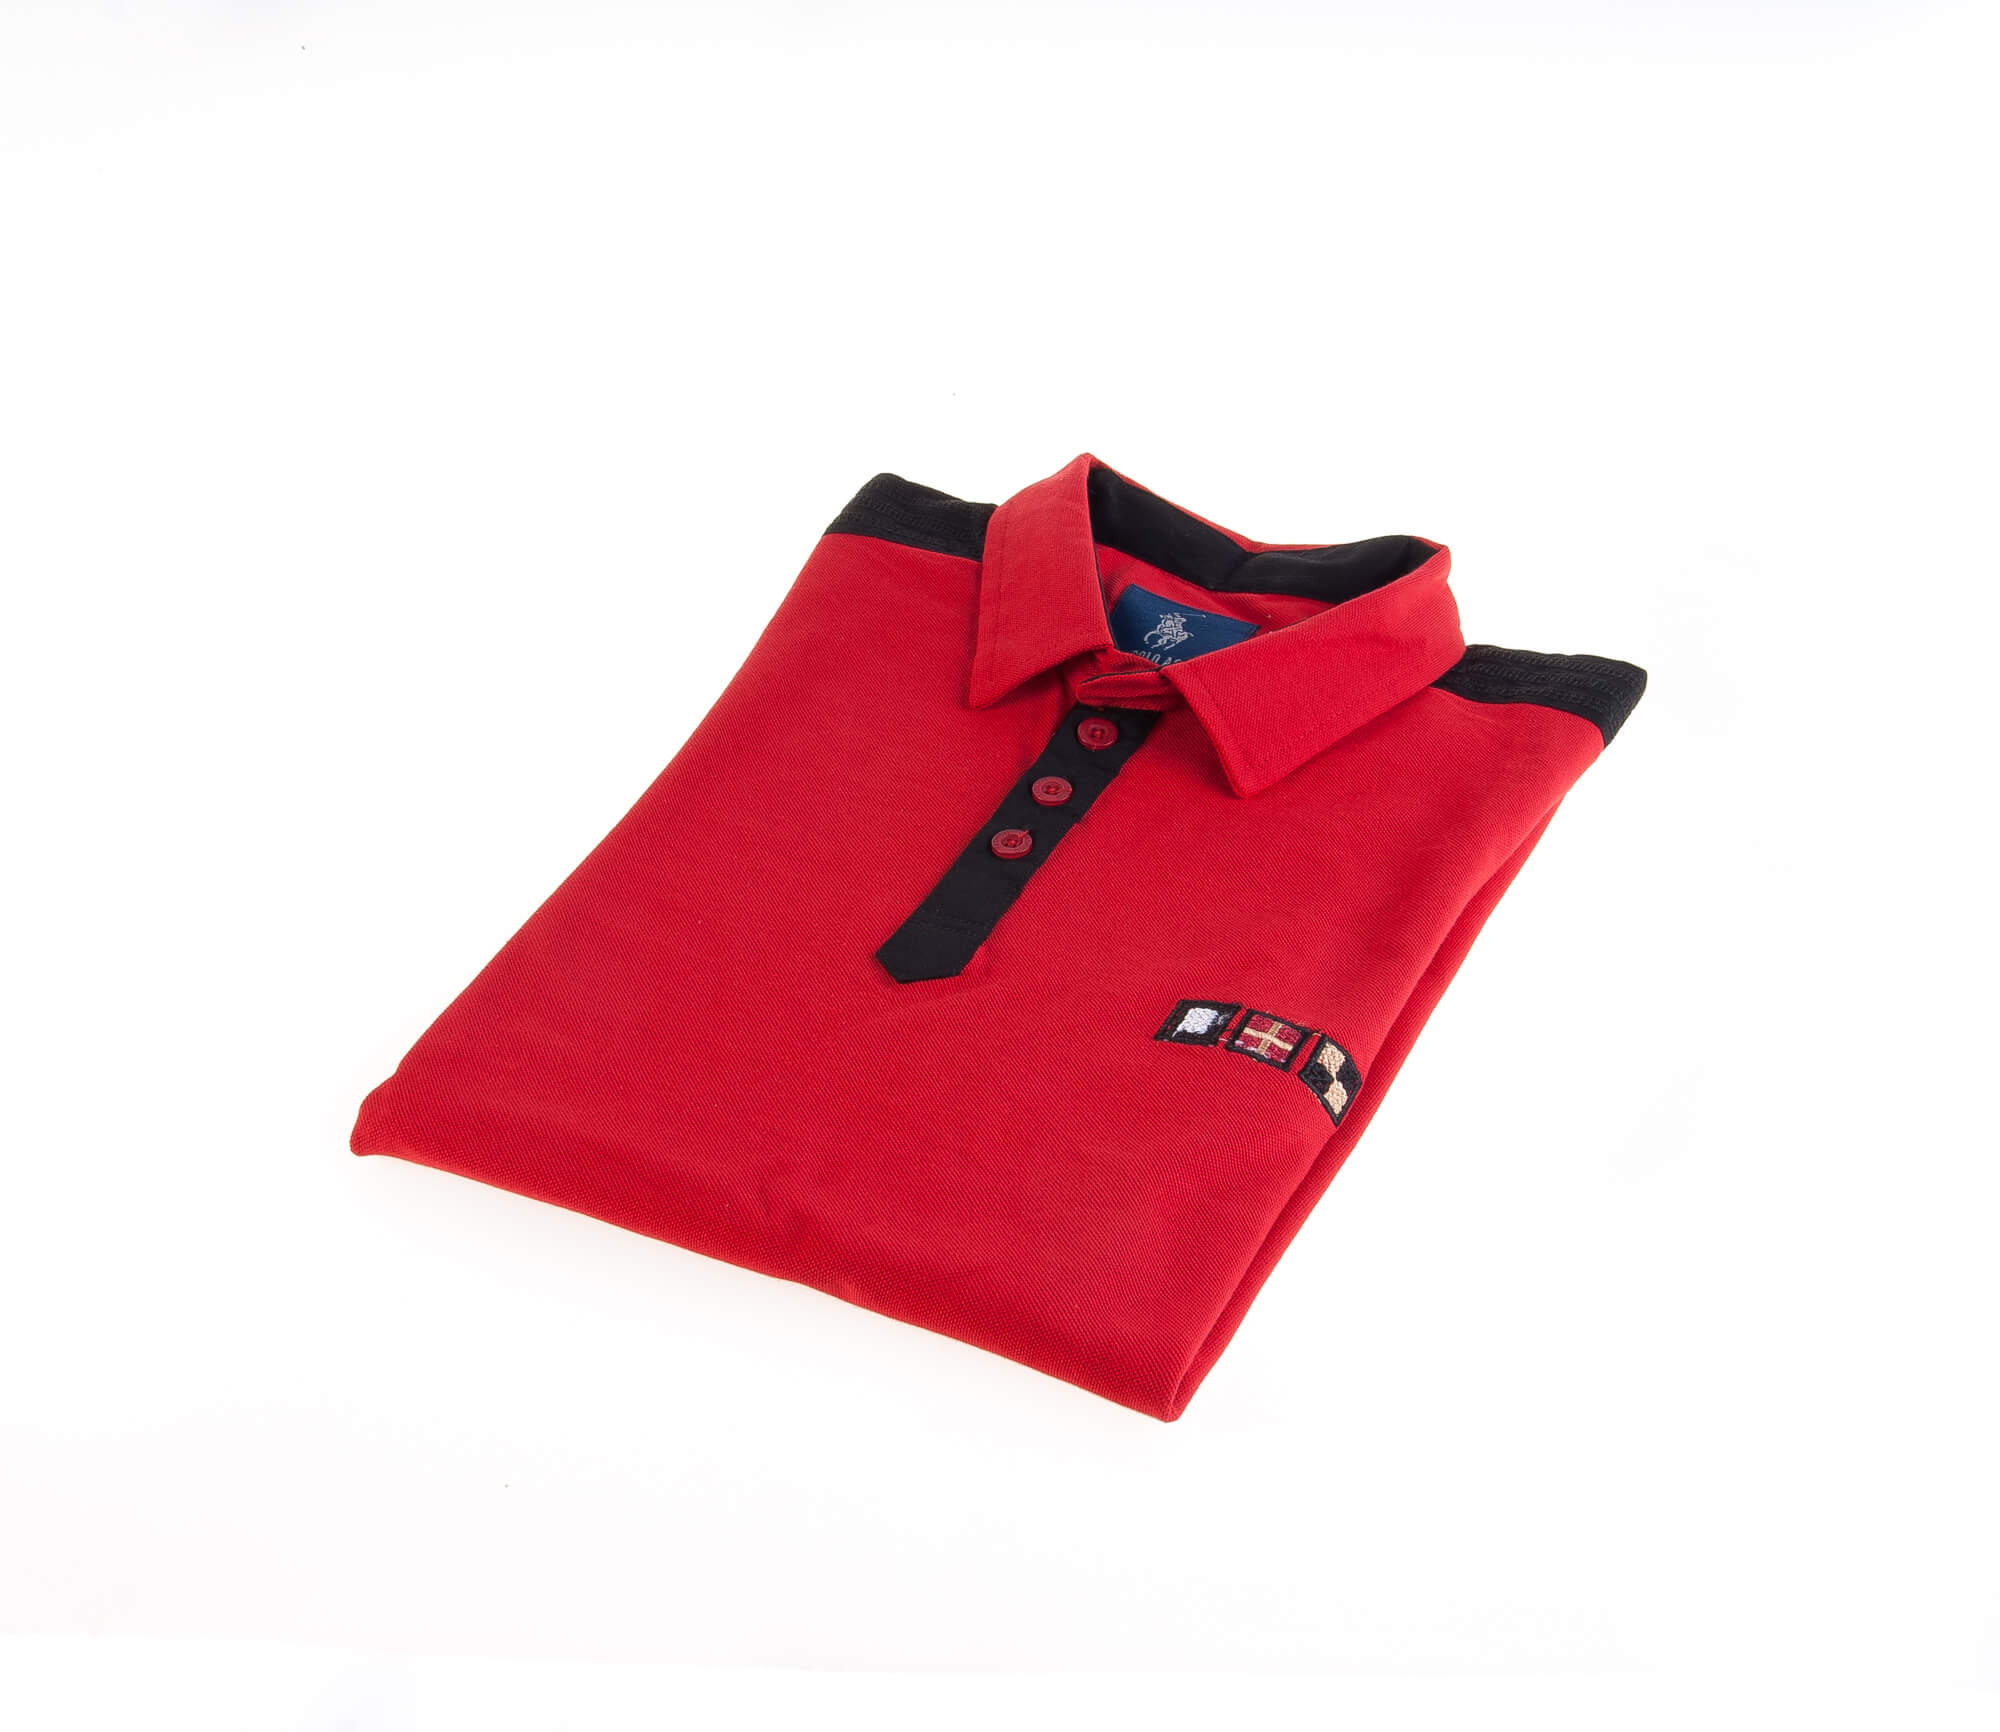 polo shirt (38 of 39)